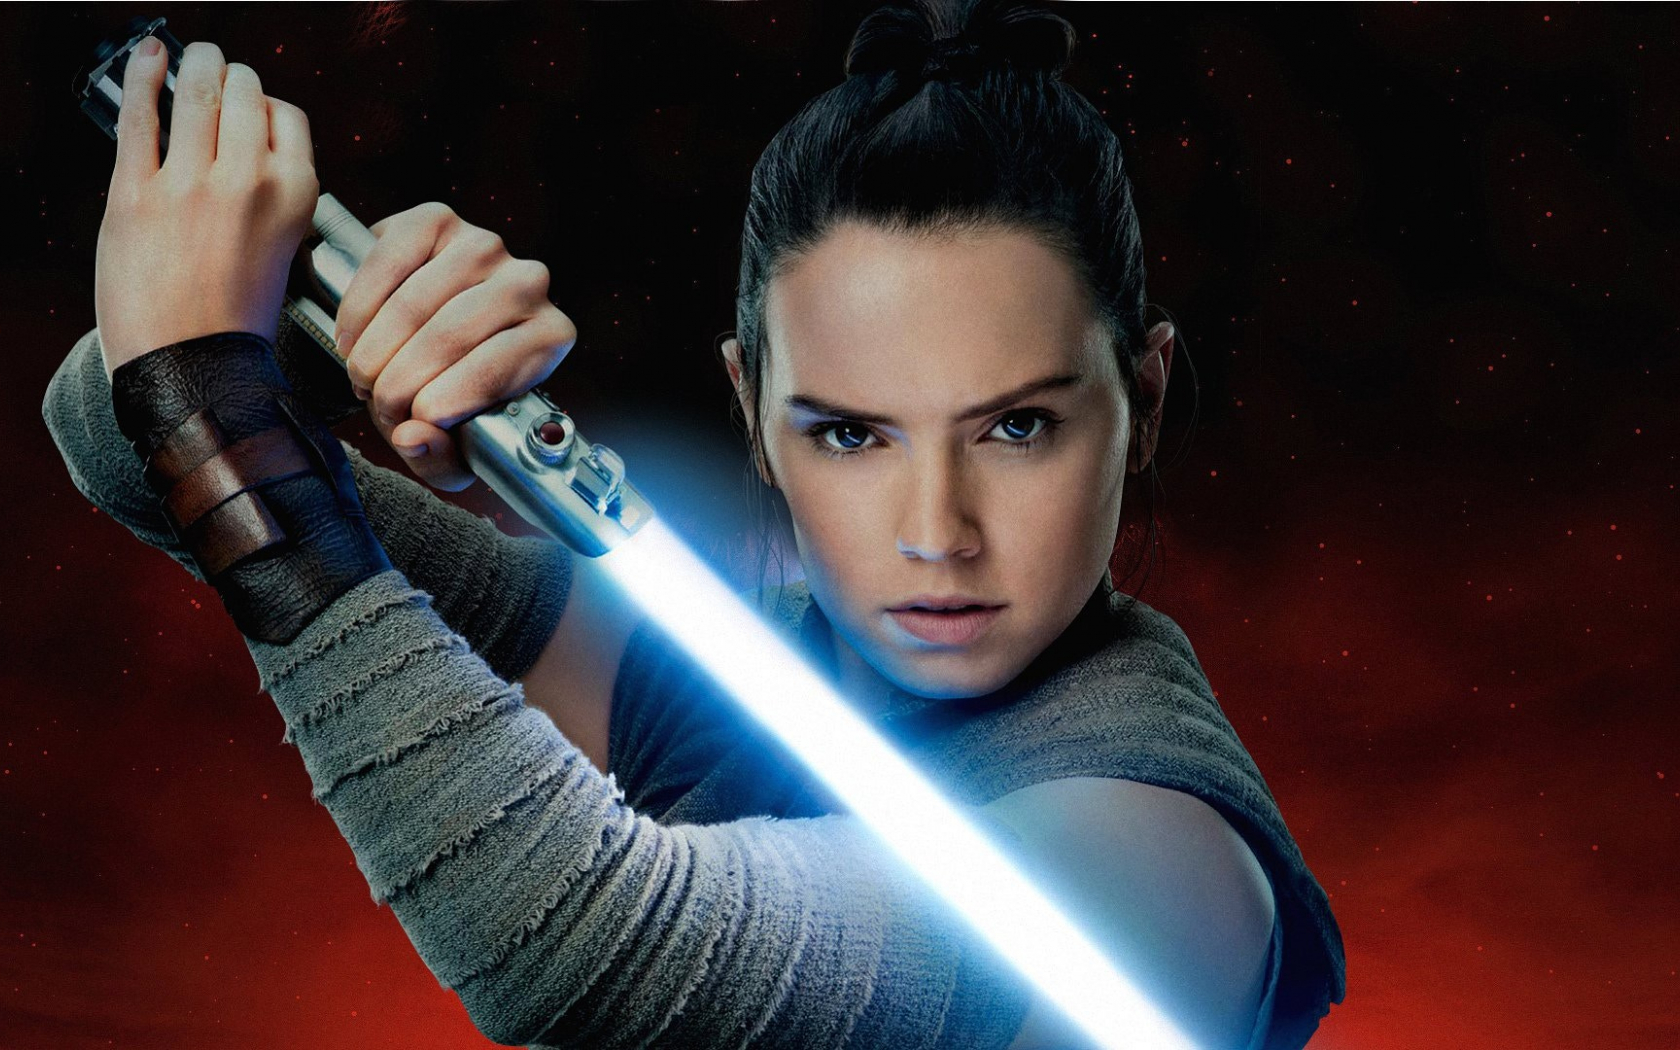 Free Download Rey Aka Daisy Ridley In Star Wars The Last Jedi Full